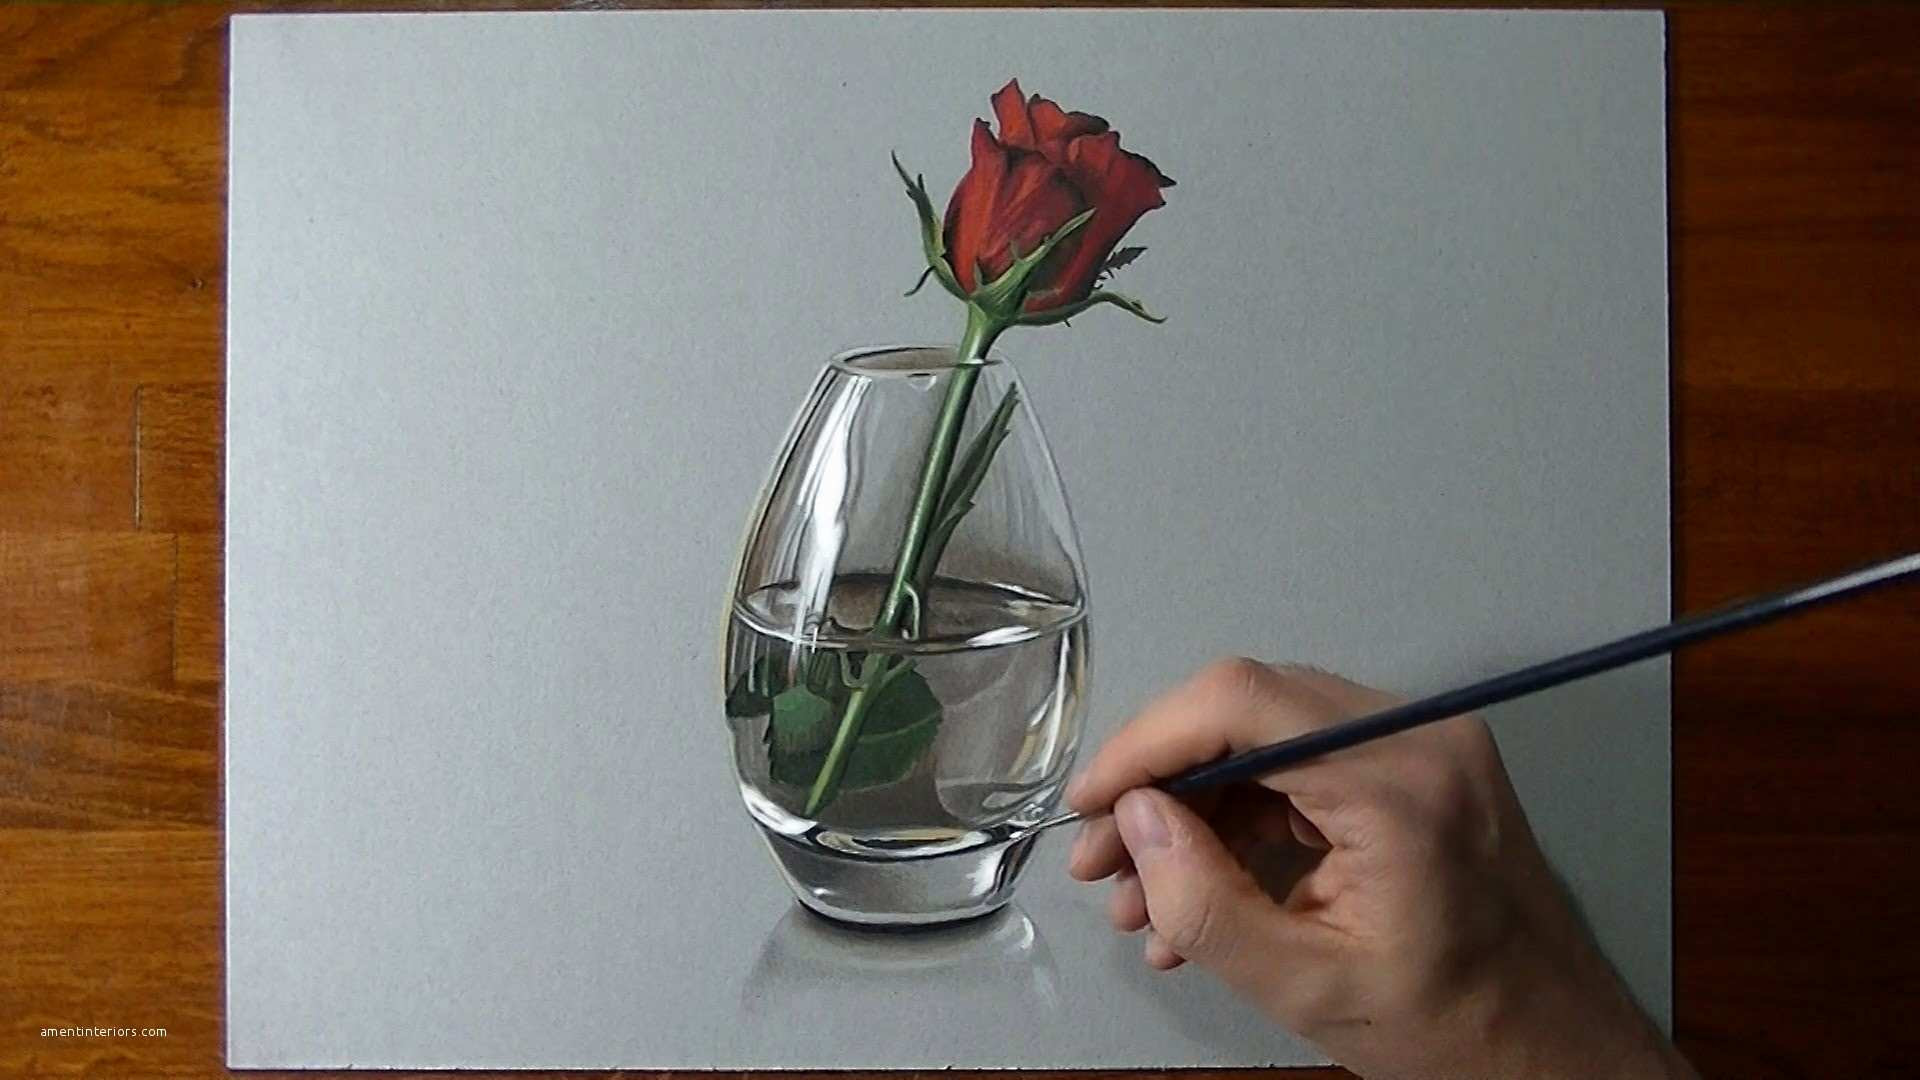 red rose vase of stunning beautiful pictures of roses styling up your drawn picture inside stunning beautiful pictures of roses styling up your drawn picture of a rose beautiful drawn vase r